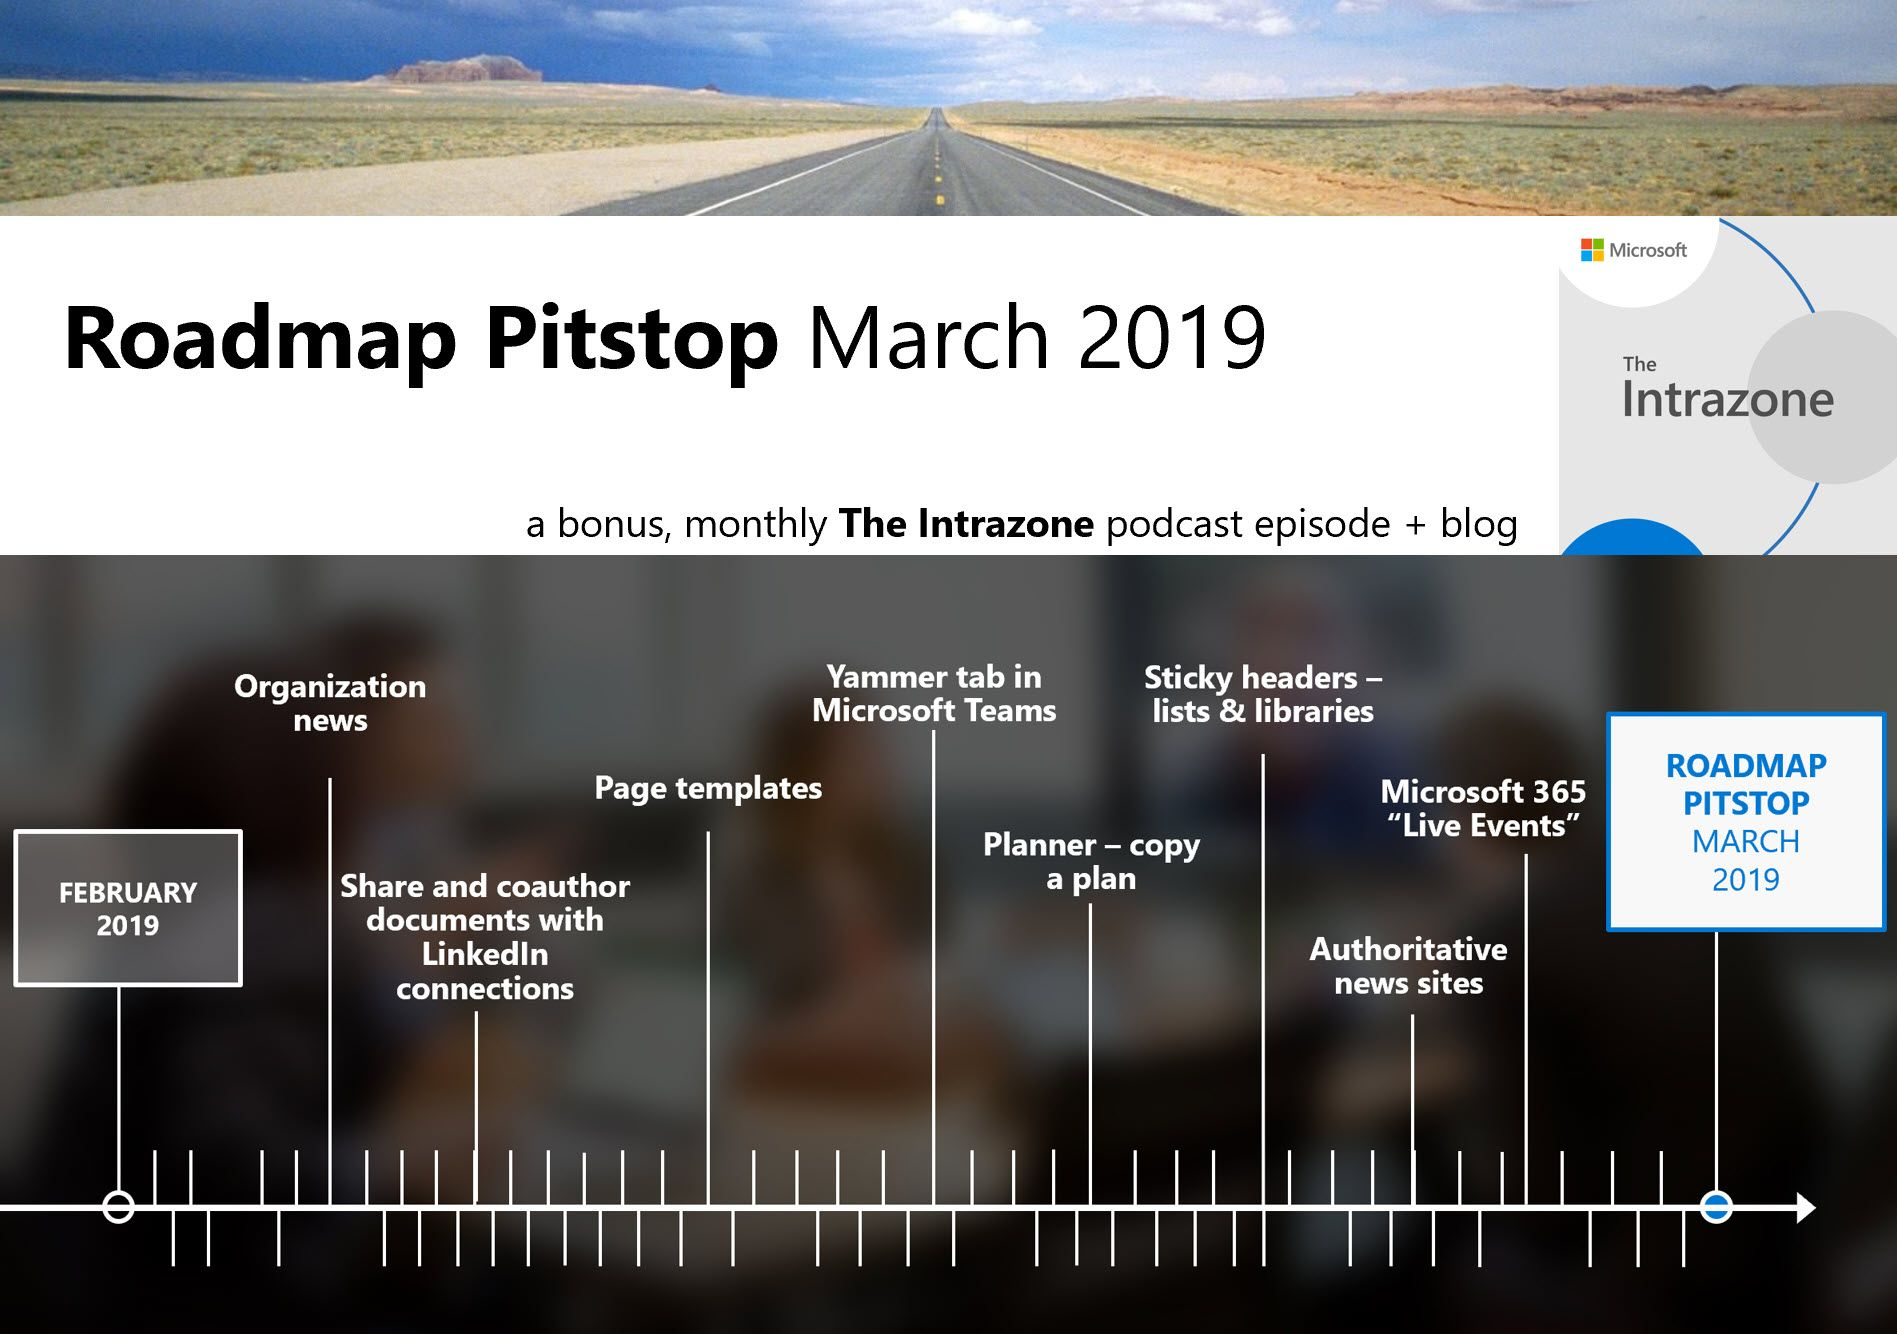 SharePoint Roadmap Pitstop March 2019